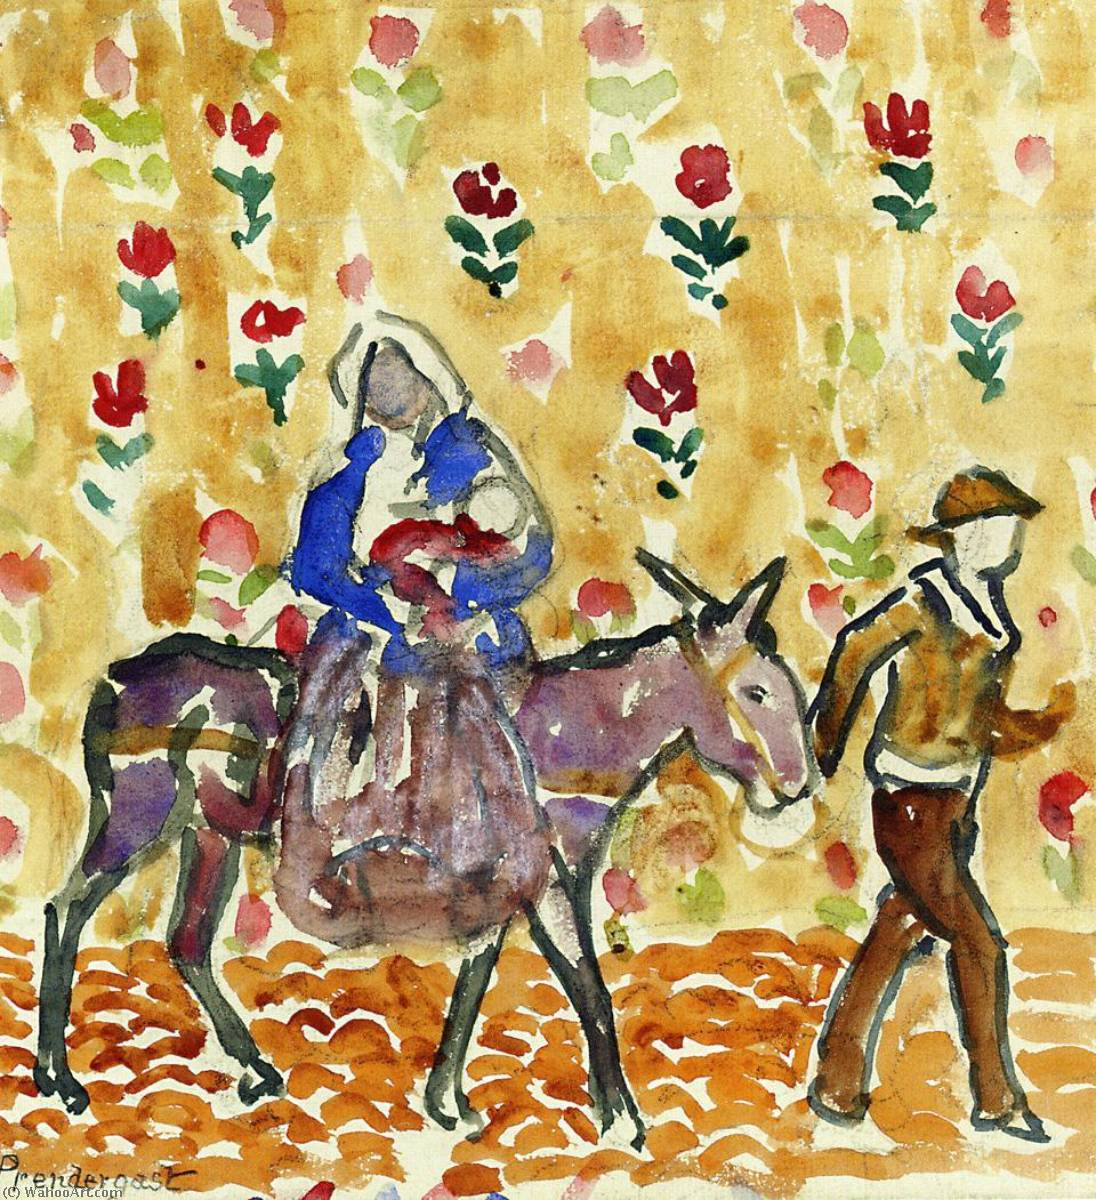 Wikioo.org - The Encyclopedia of Fine Arts - Painting, Artwork by Maurice Brazil Prendergast - Flight into Egypt